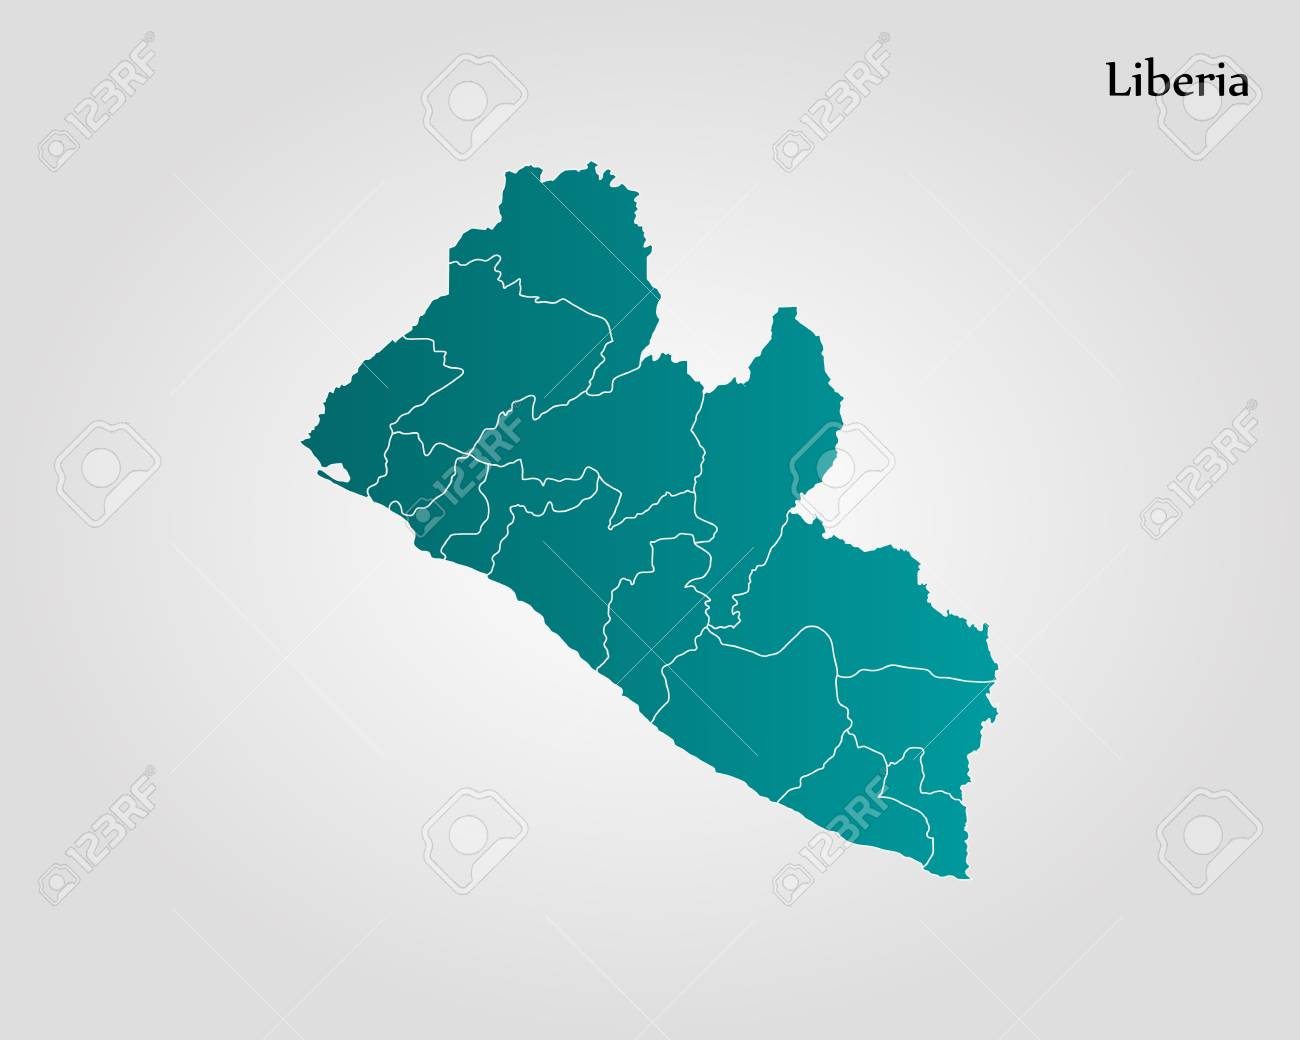 Map Of Liberia Vector Illustration World Map Royalty Free Cliparts